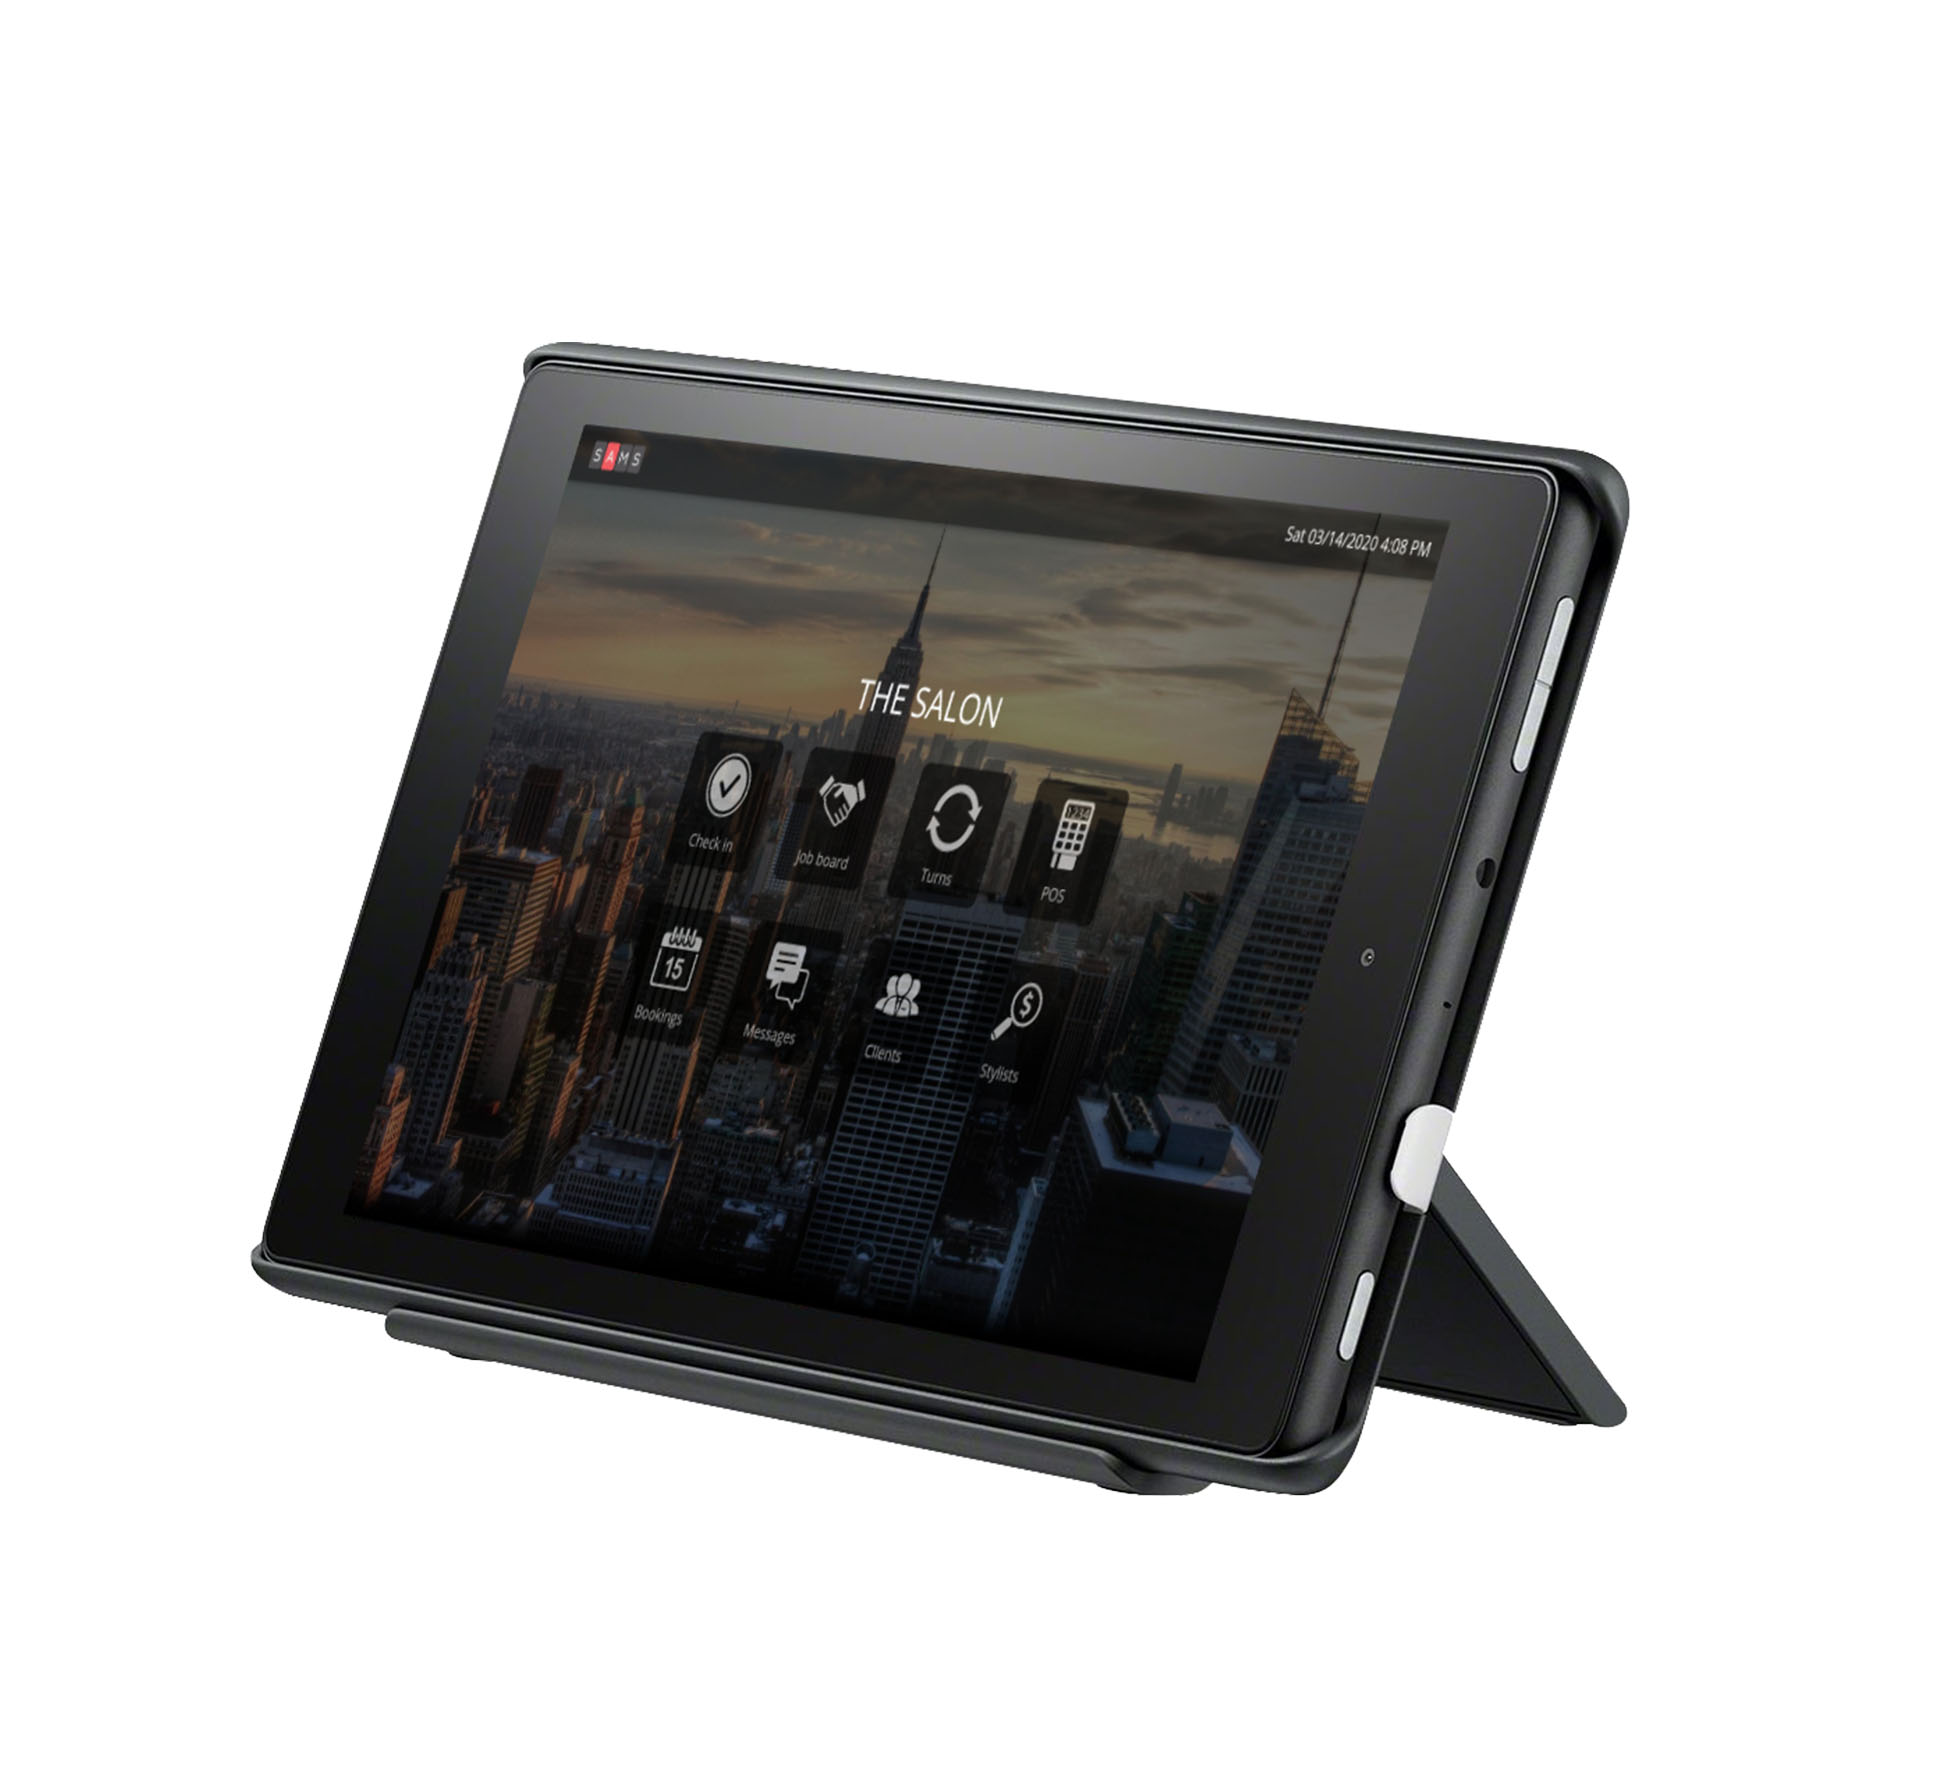 7 in Android payment tablet 1